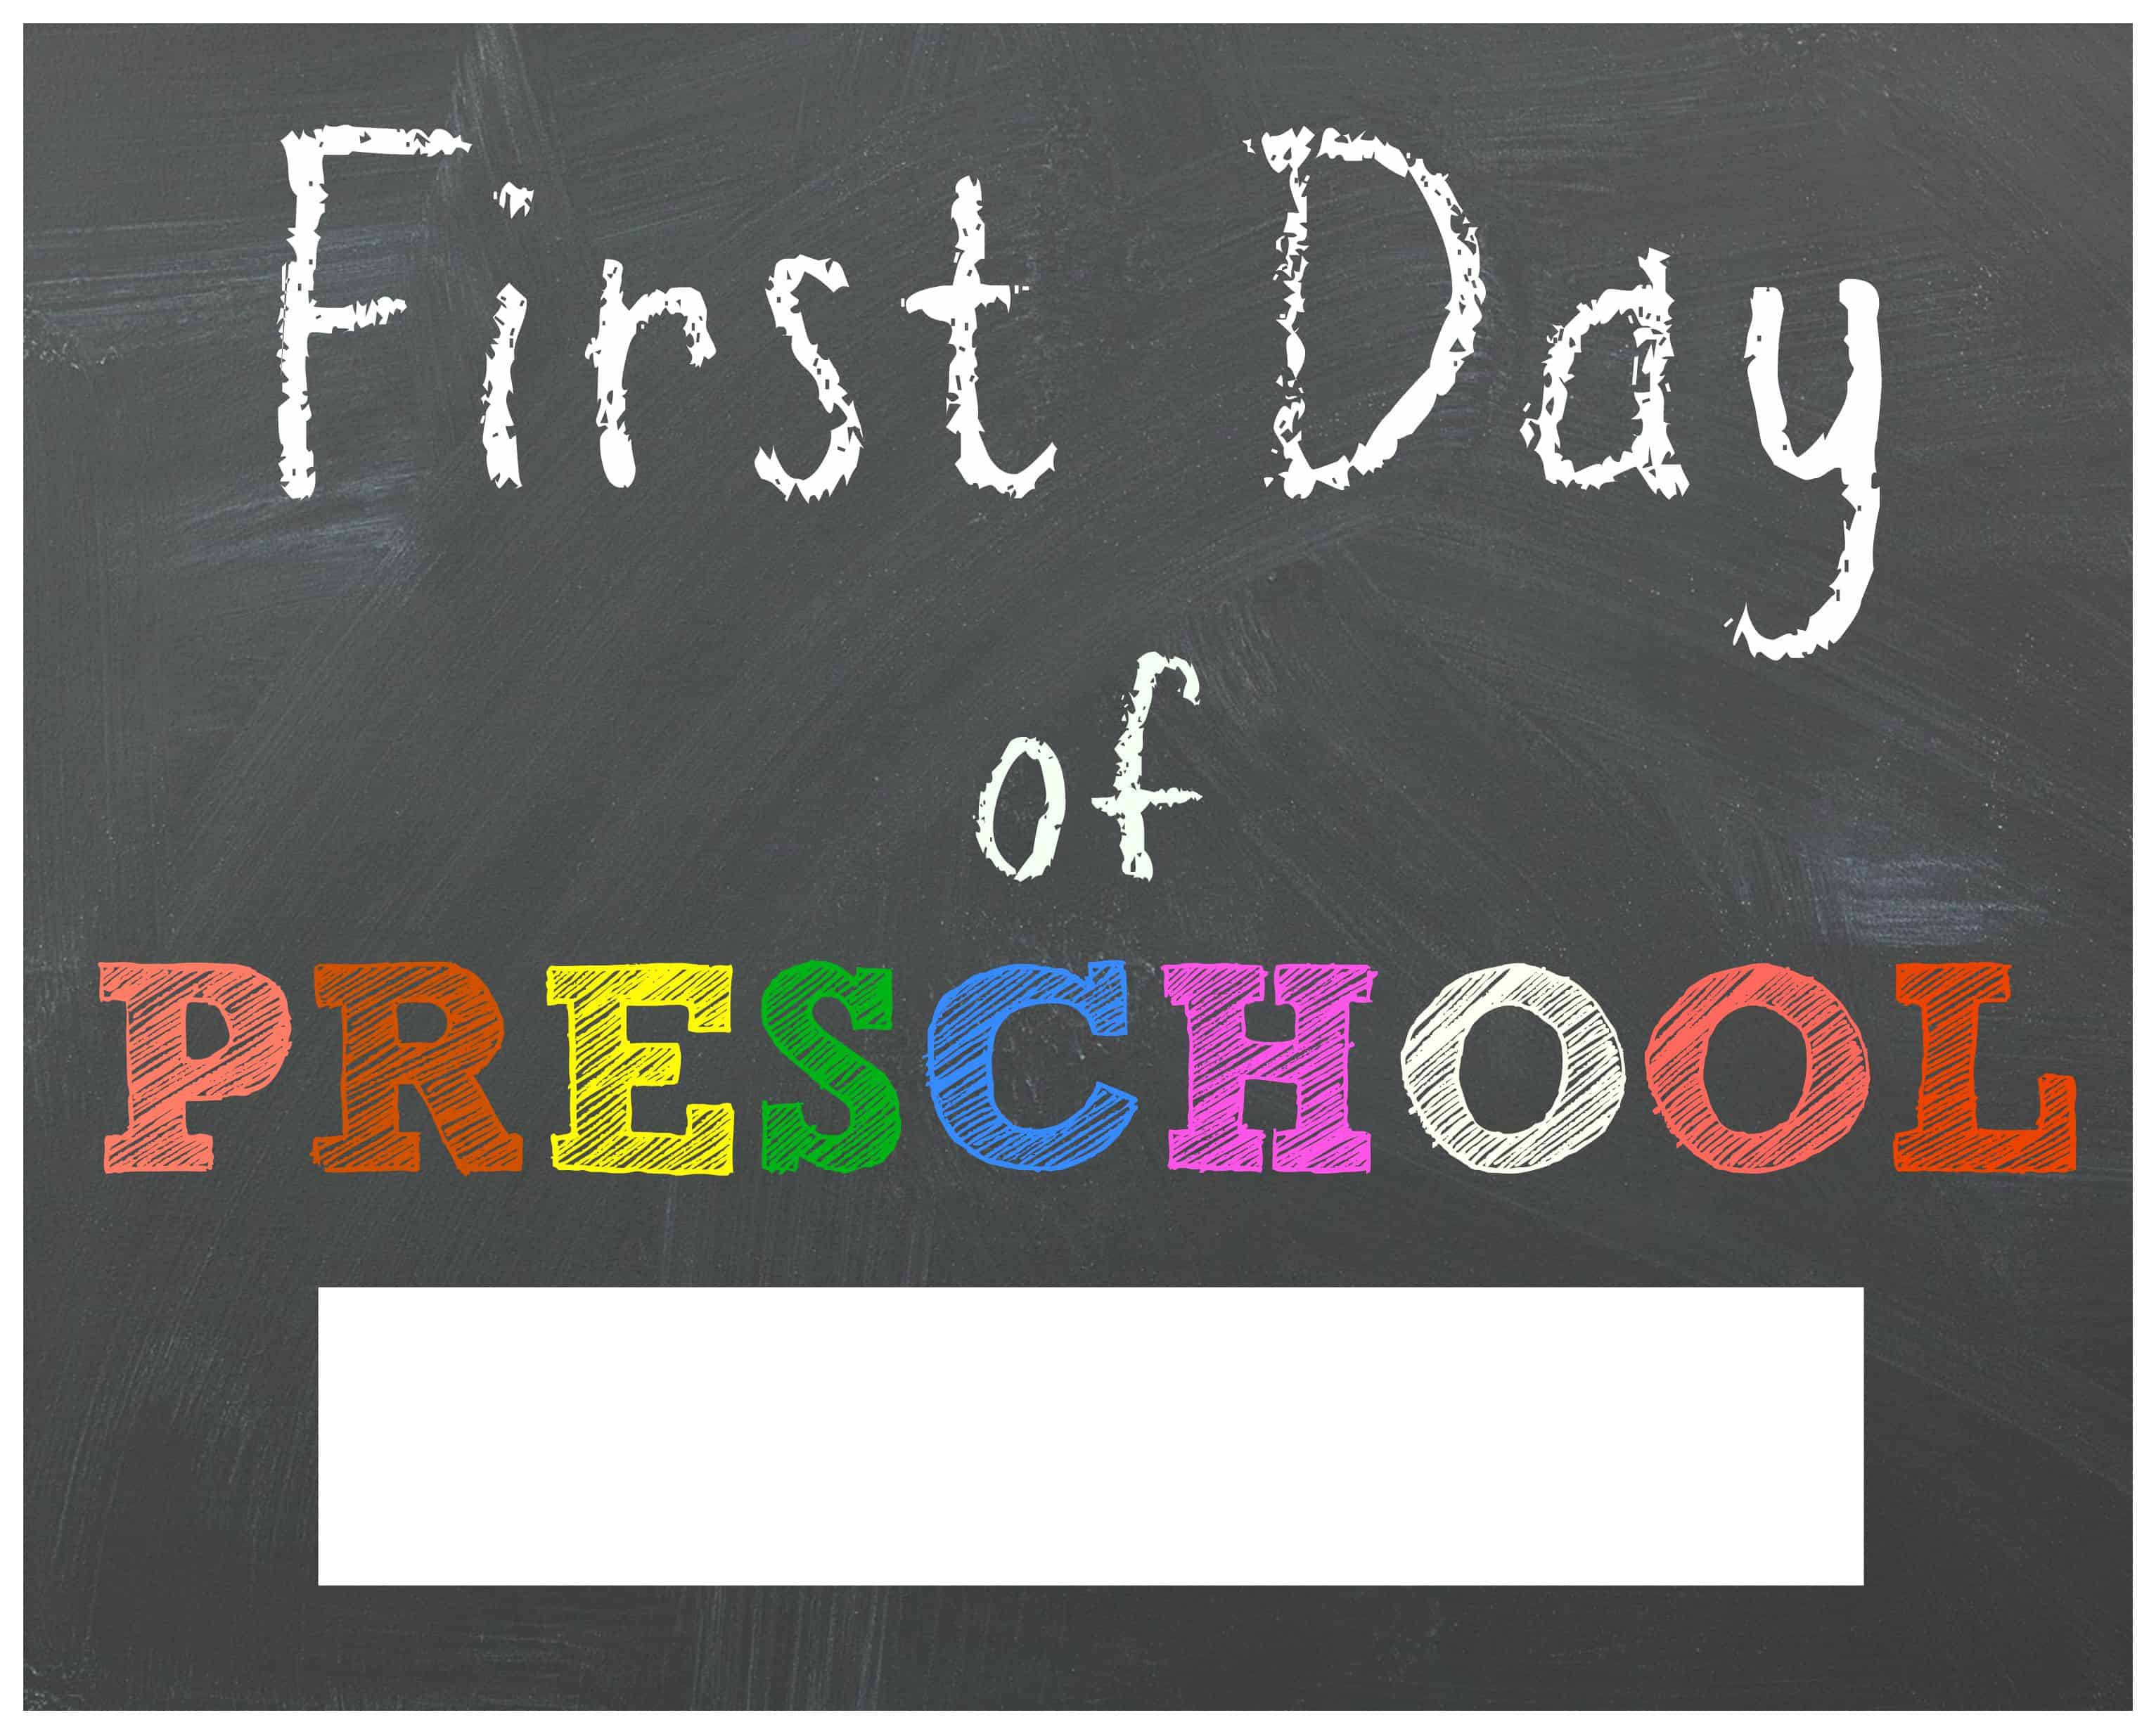 Comprehensive image with first day of preschool sign printable